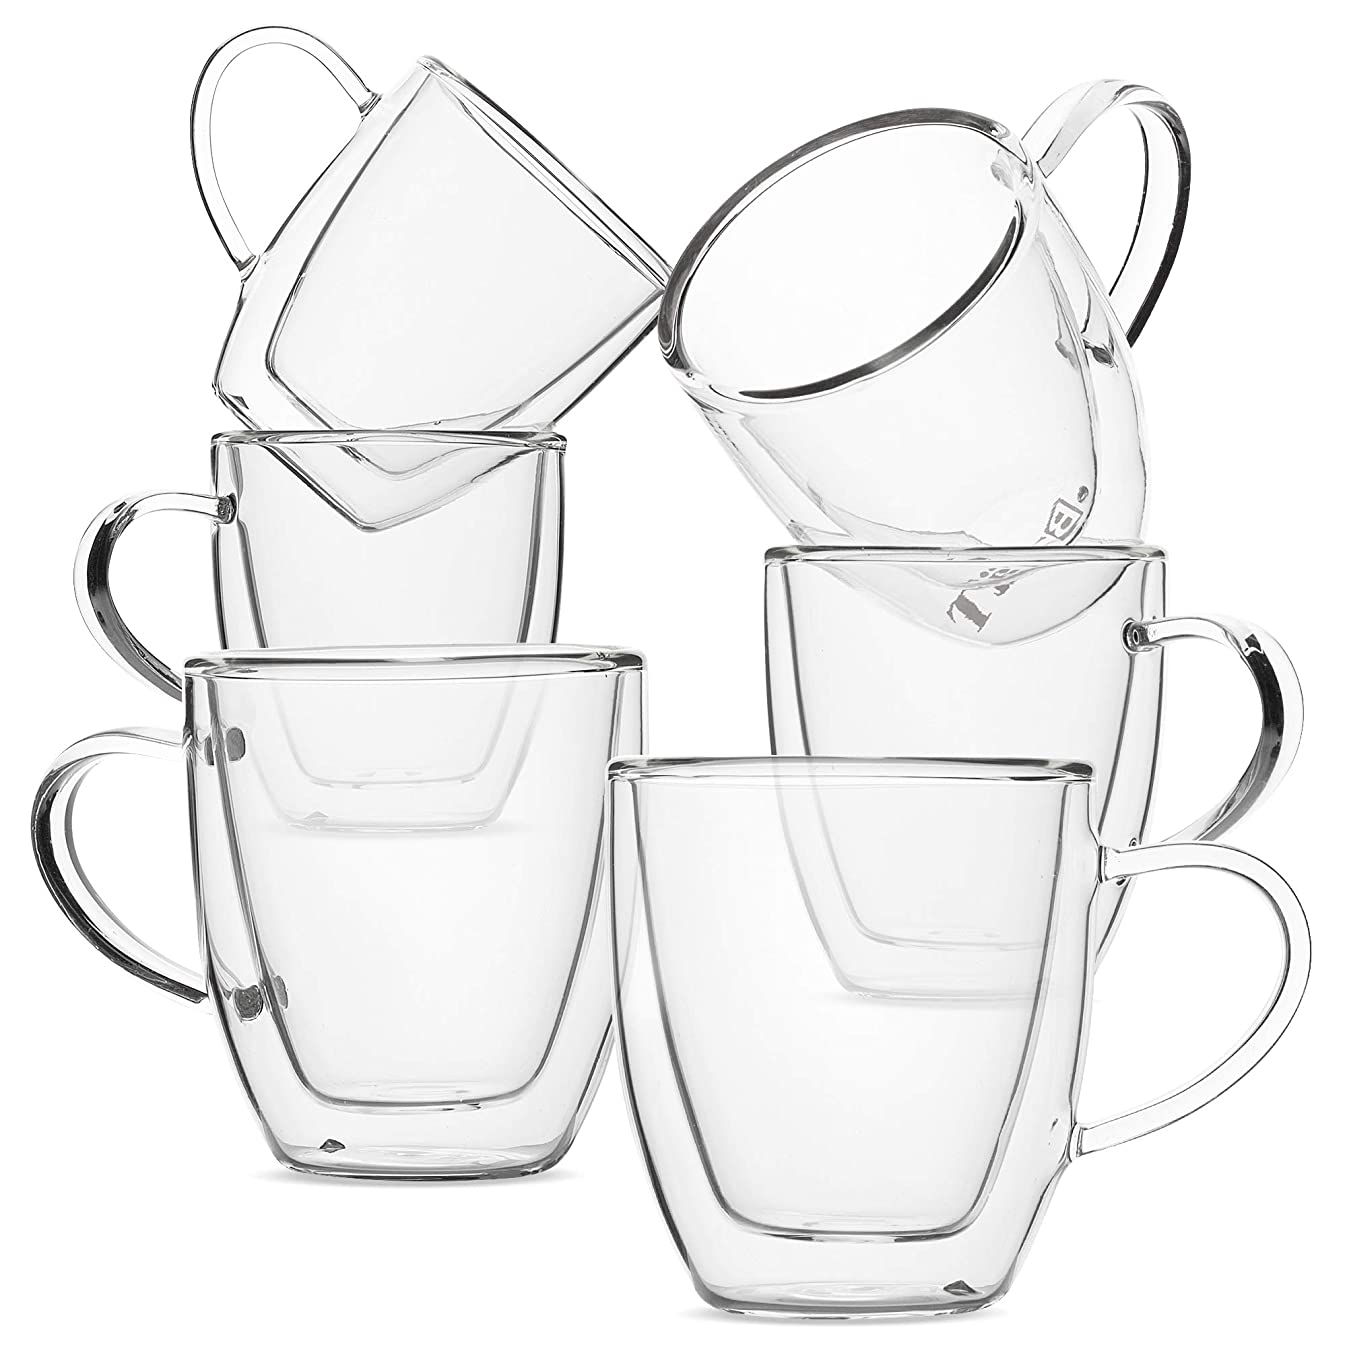 BT?T- Small Espresso Cups, Demitasse Cups, Set of 6 (2.0 oz, 60 ml), Glass Coffee Mugs, Double Wall Glass Cups, Cappuccino Cups, Latte Cups, Clear Coffee Cup, Tea Glass, Espresso Glass, Glass Tea Cups